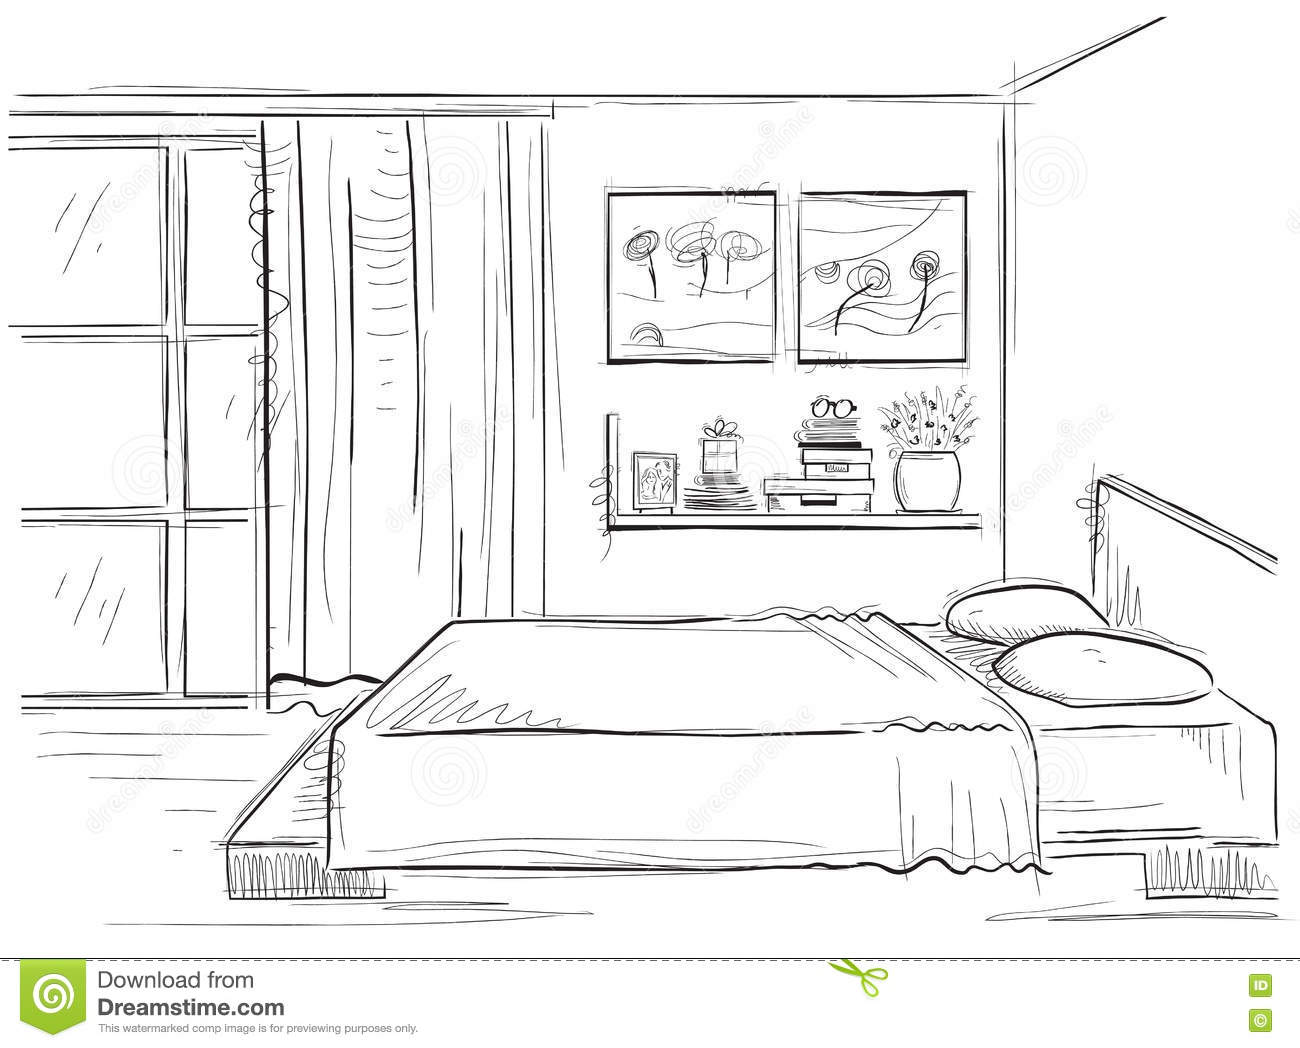 dessin maison facile gallery of coloriage duune maison with dessin maison facile stunning. Black Bedroom Furniture Sets. Home Design Ideas